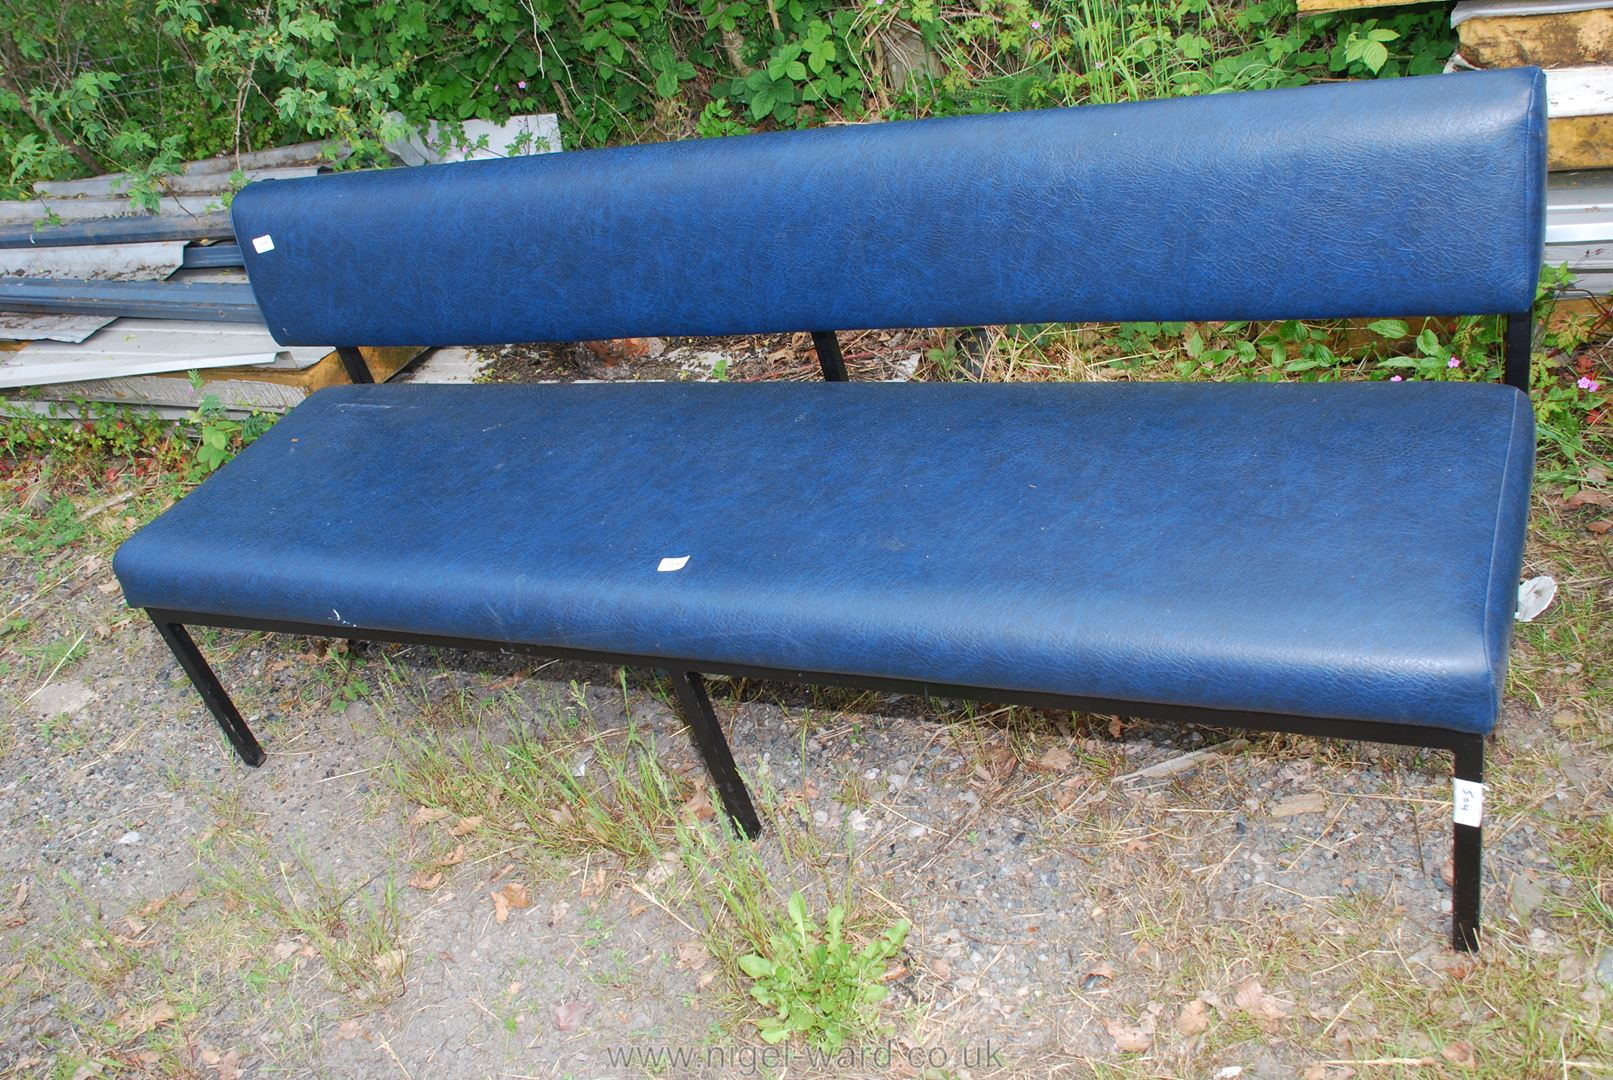 A metal framed leather effect Bench/seat, 6' long.